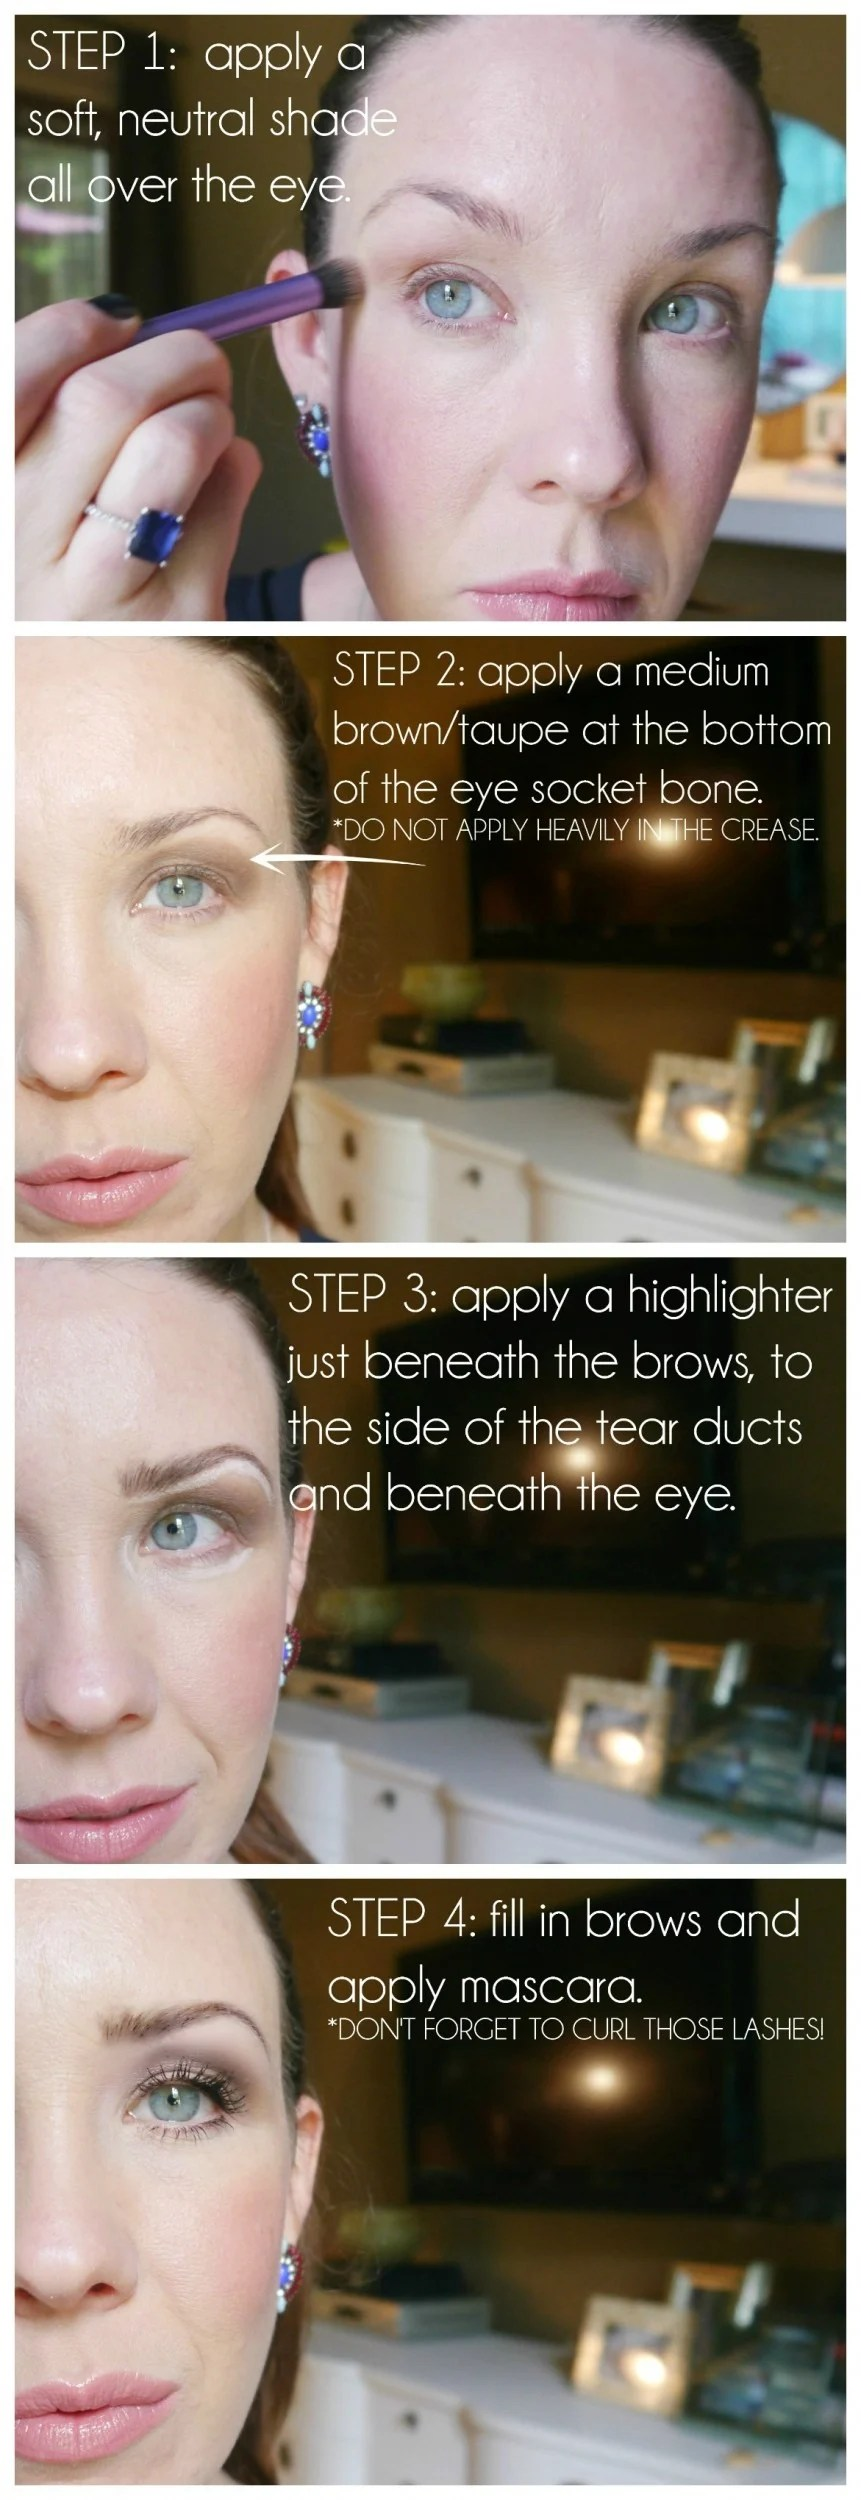 Makeup tutorial for a hooded eye jenni raincloud l hooded eye droopy eye makeup tutorial baditri Gallery